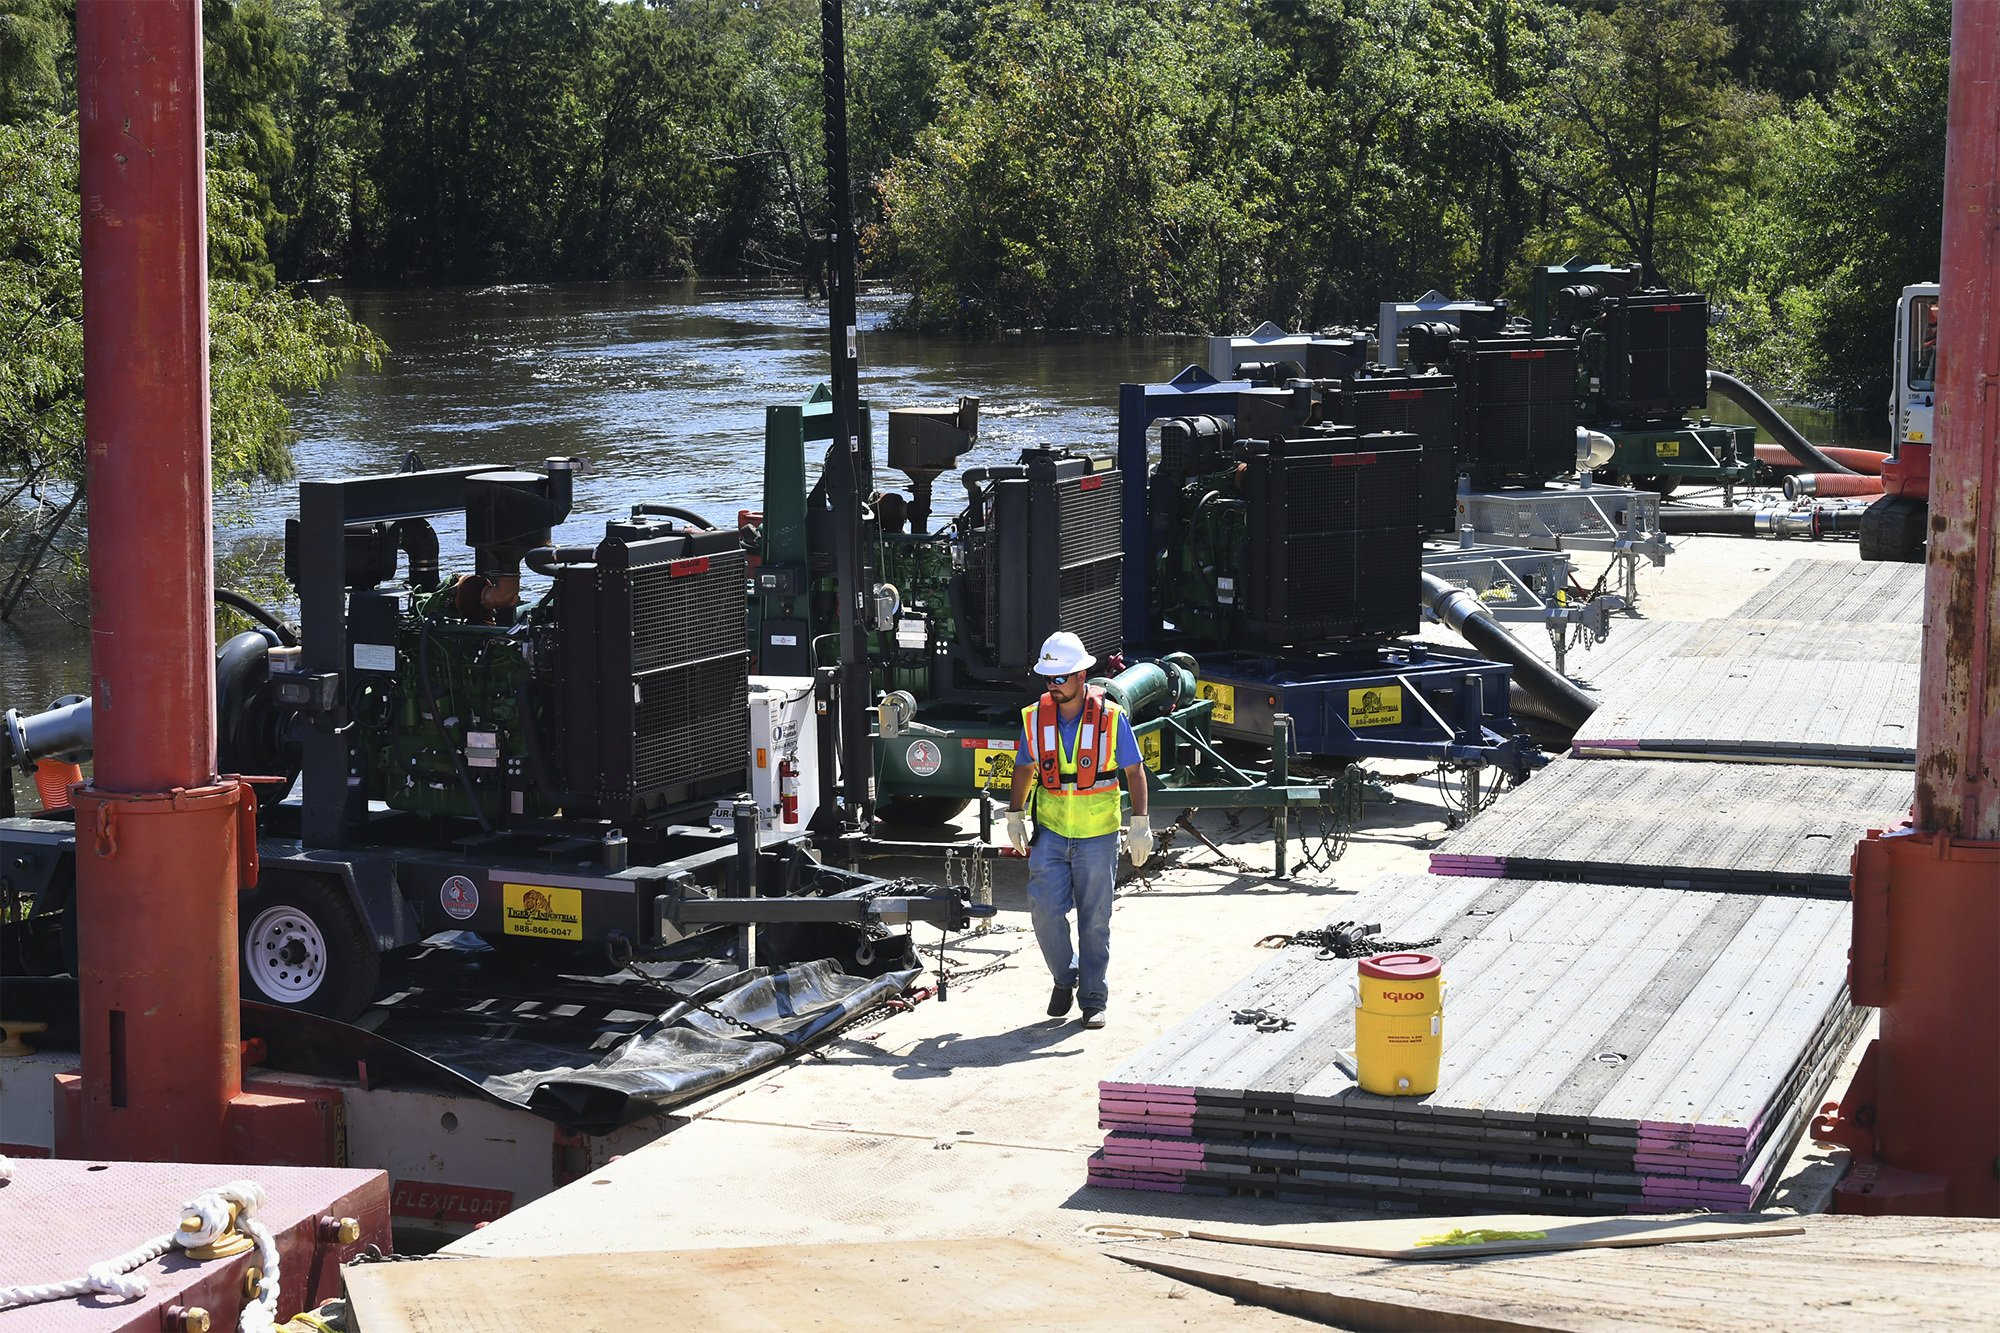 Beaumont may change water system after Hurricane Harvey